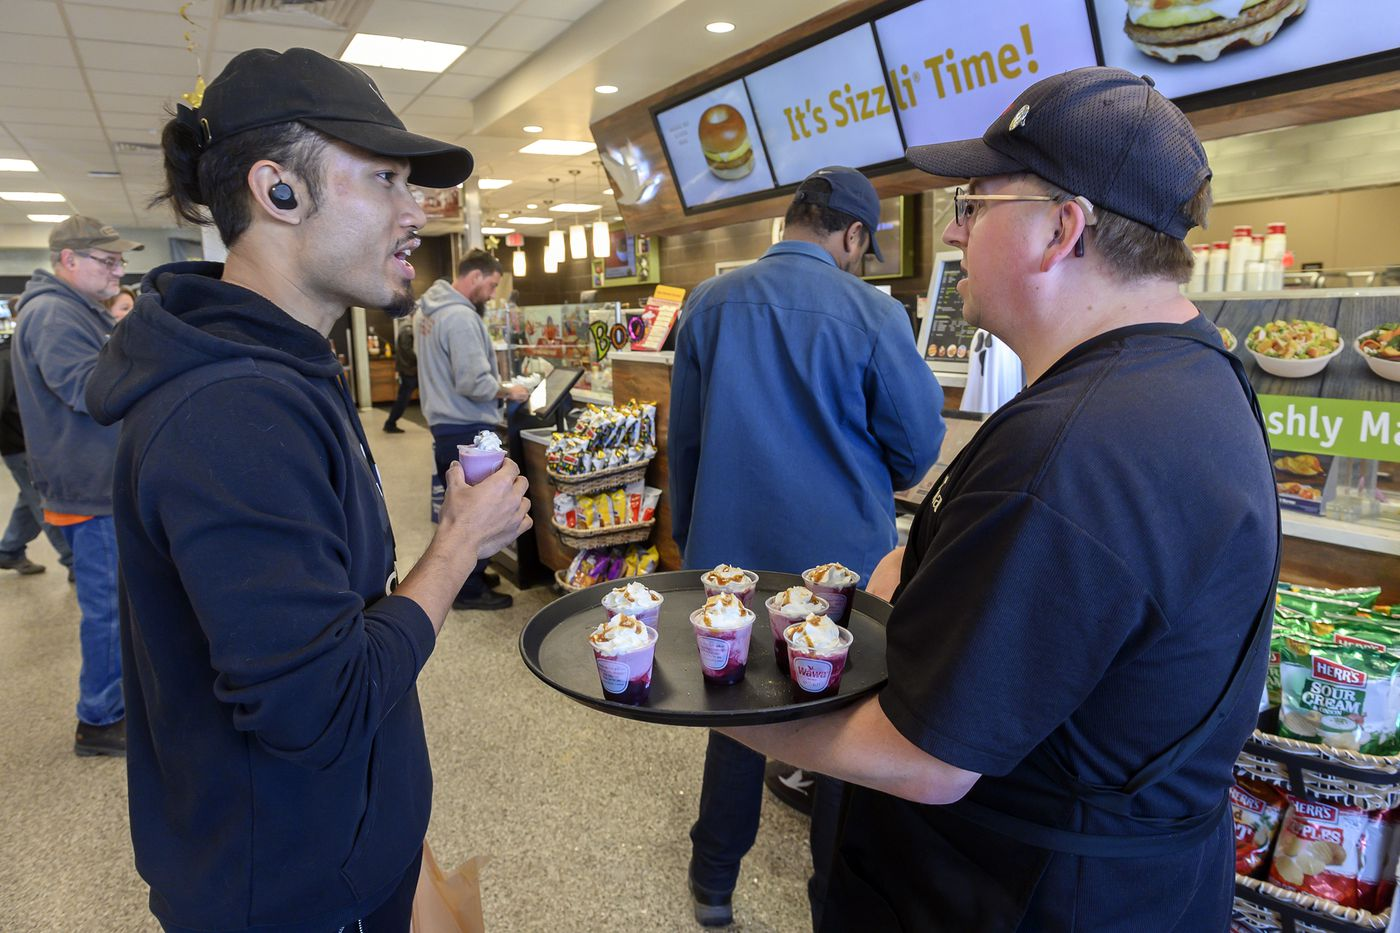 John Mitchell (right), a long-time Wawa employee, with customer Tony Kruth of South Philadelphia as he gives out samples of blender drinks.